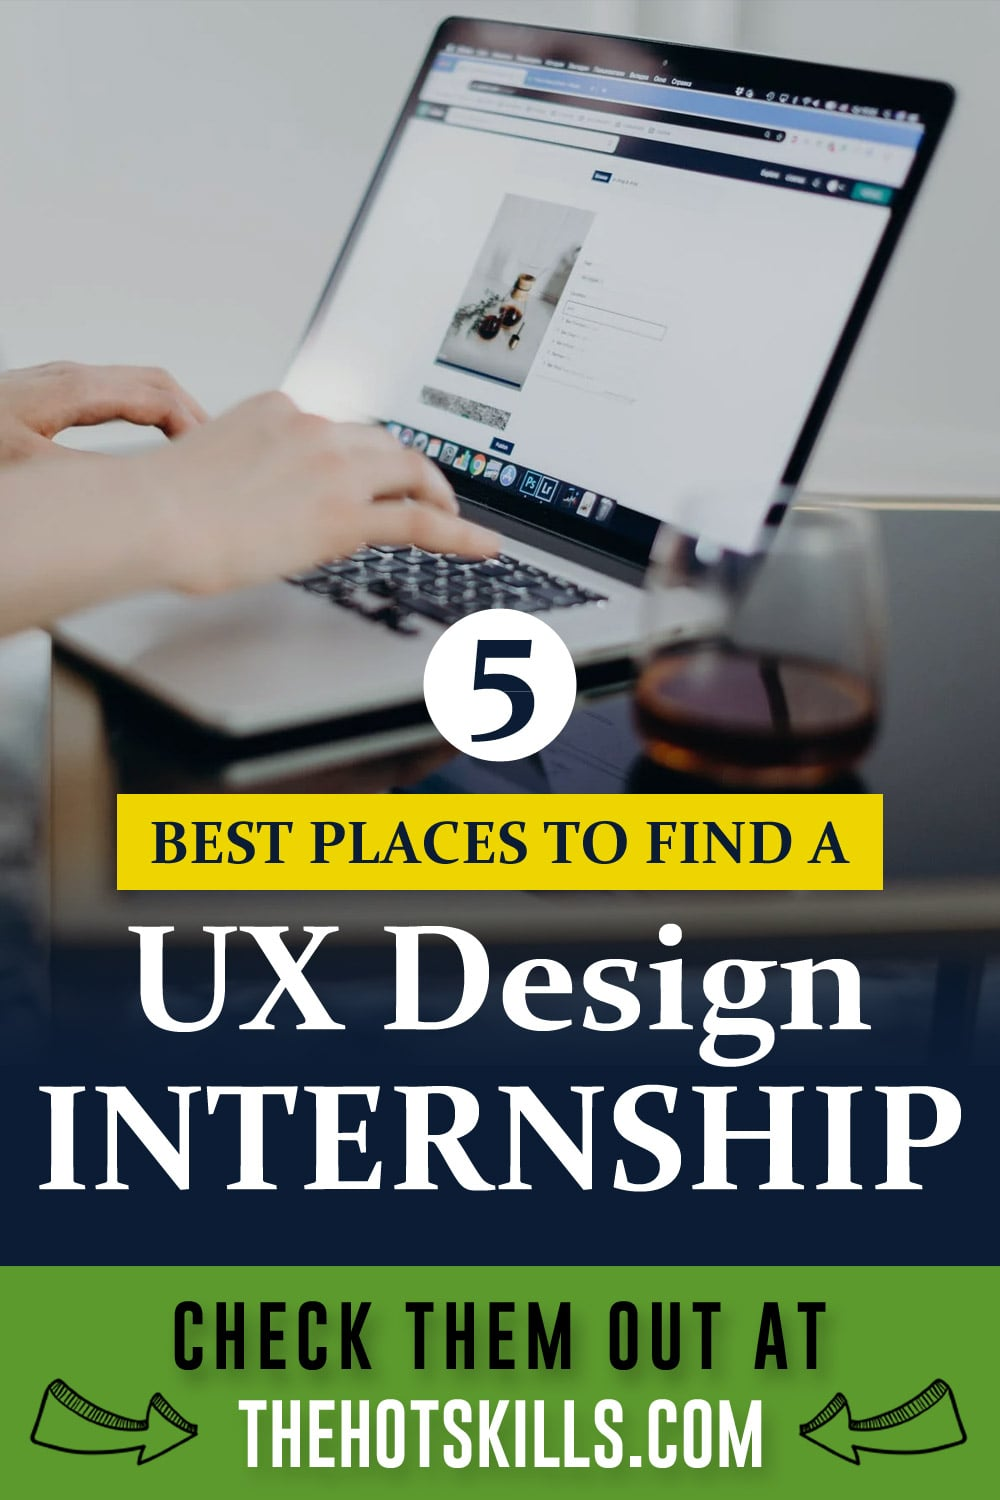 5 Best Places to Find a UX Design Internship - Thehotskills